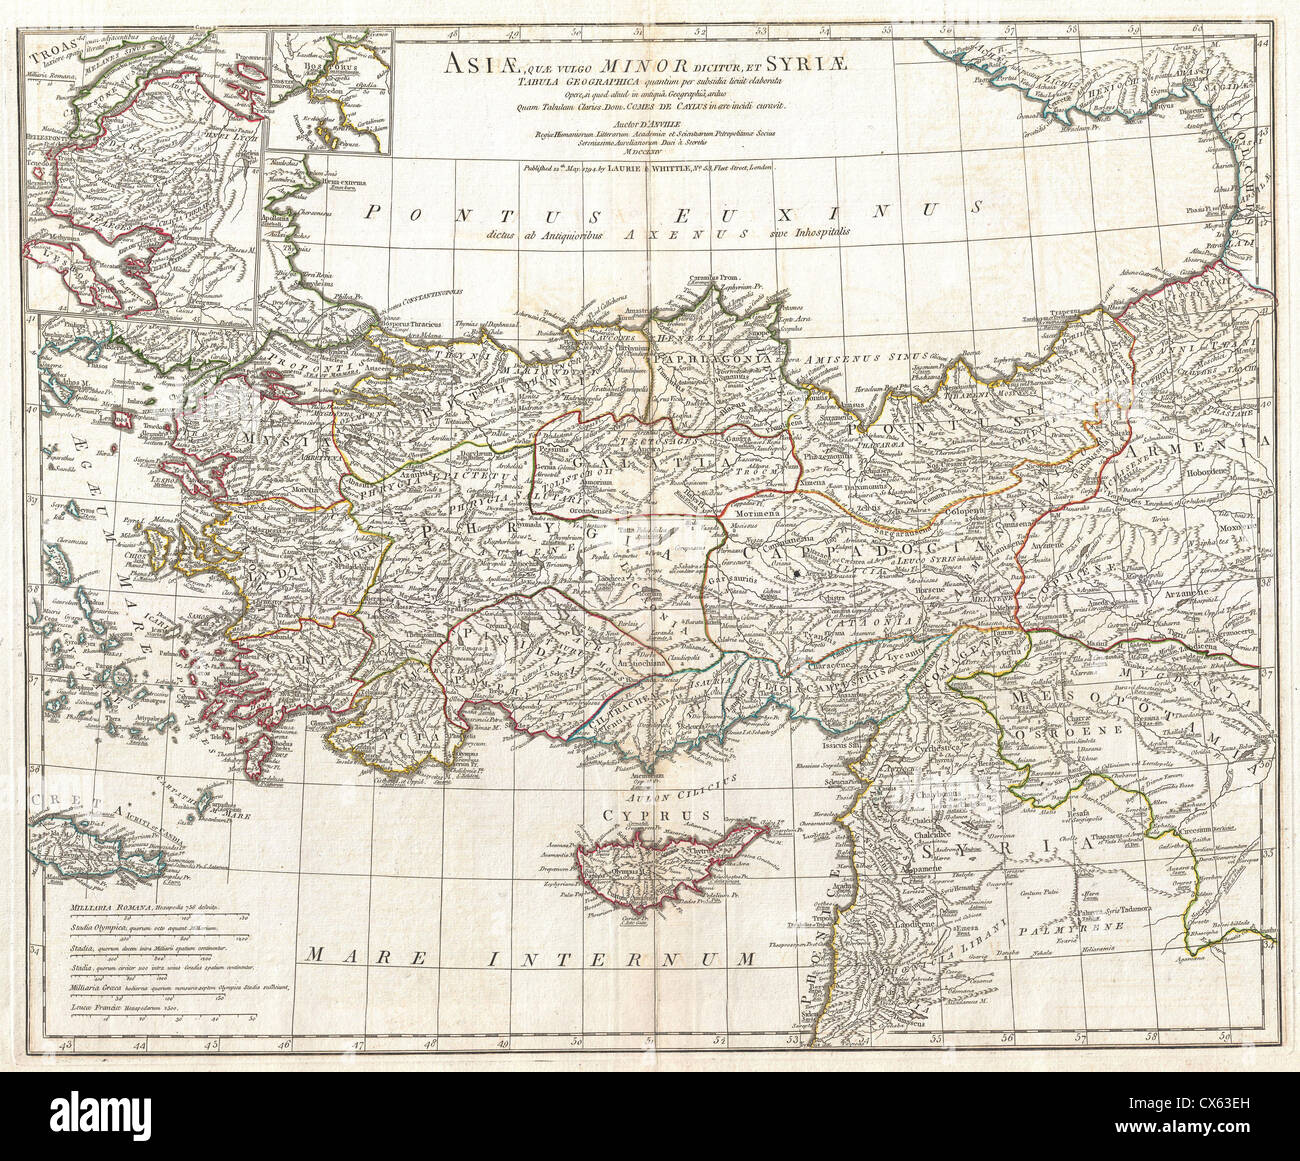 1794 Anville Map of Asia Minor in Antiquity (Turkey,Cyprus, Syria) - Stock Image